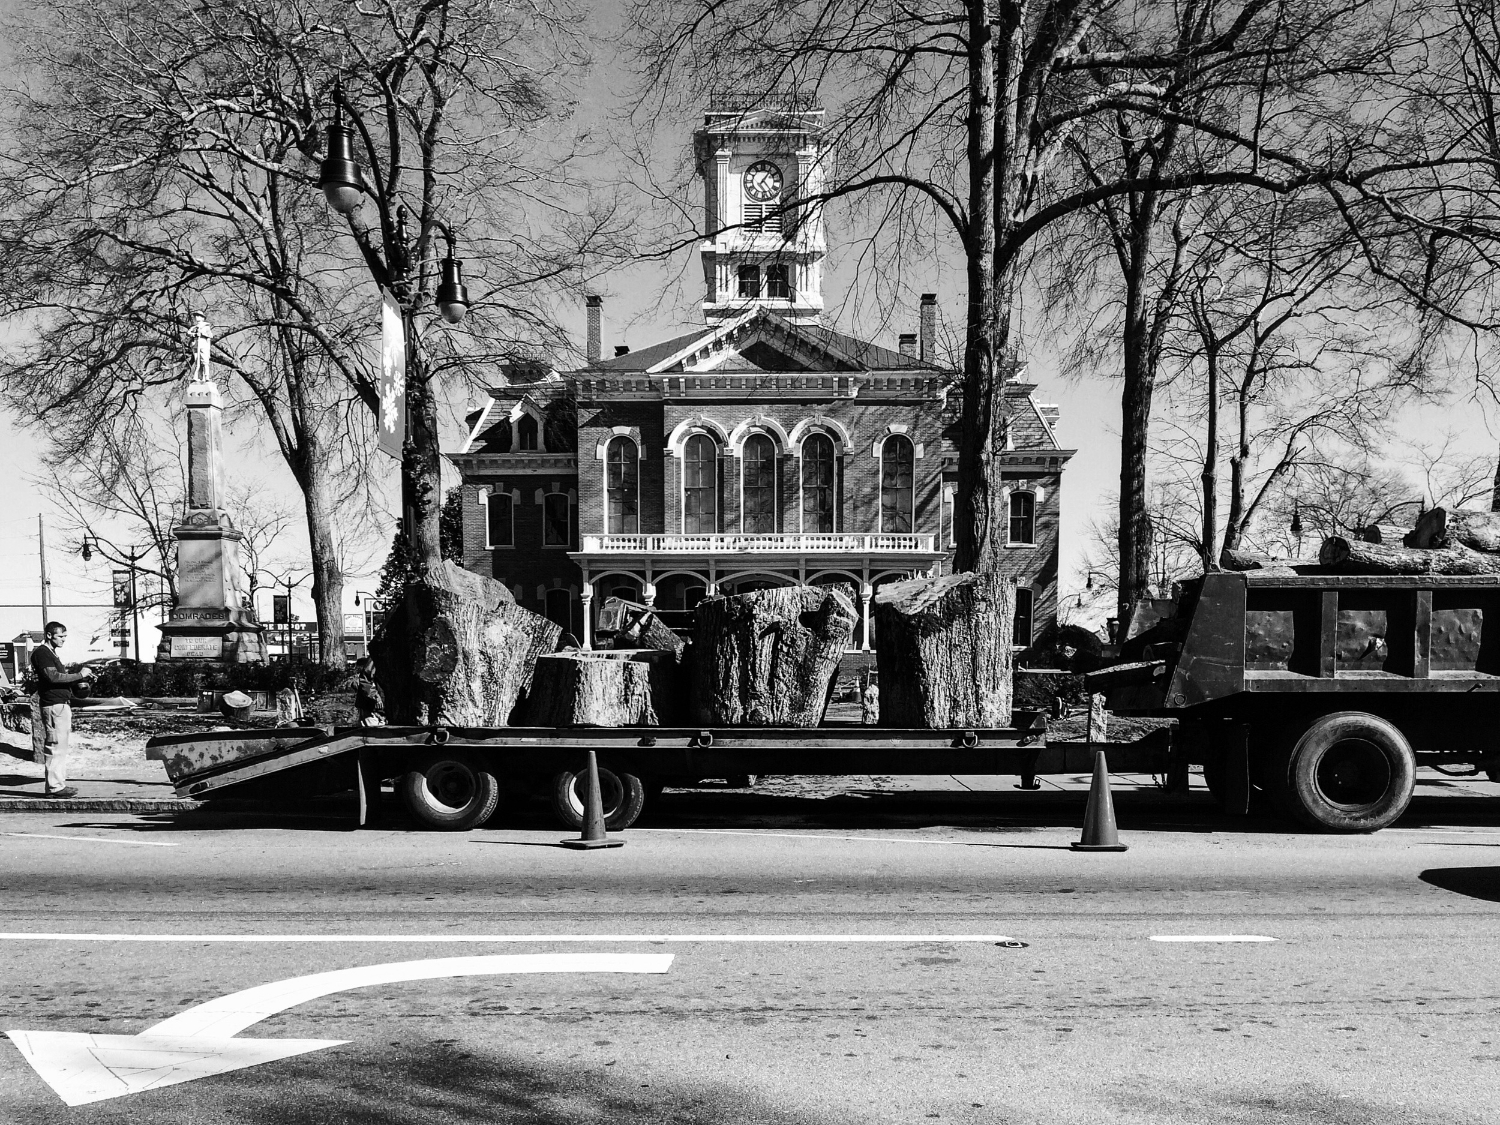 The day the original trees were cut down on the Courthouse lawn